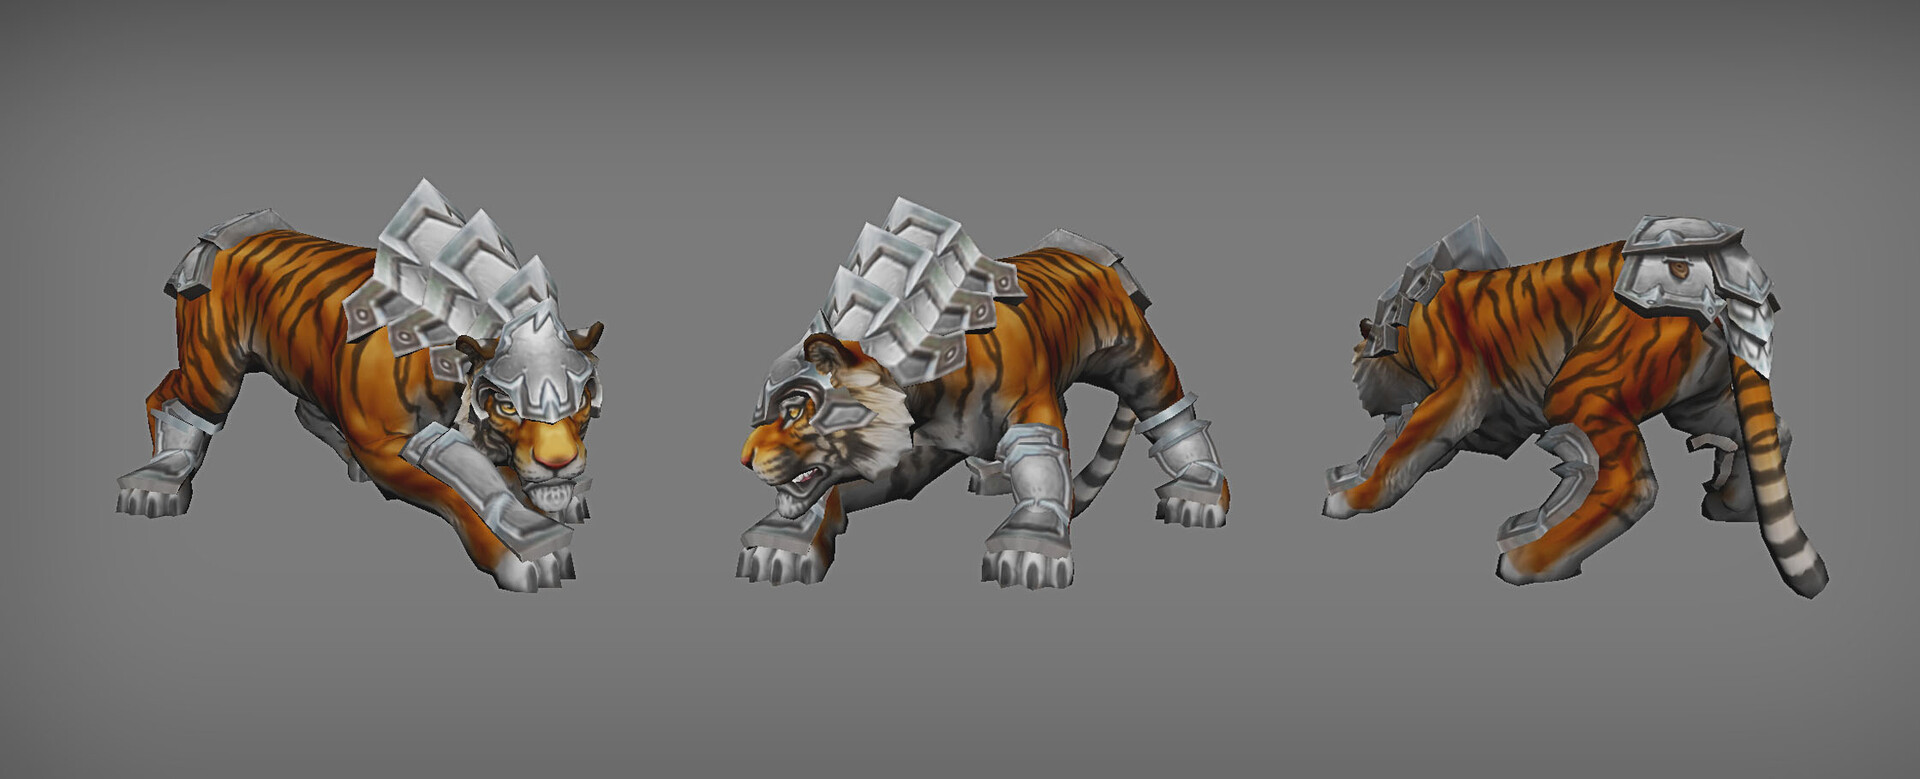 Tiger creature with armor